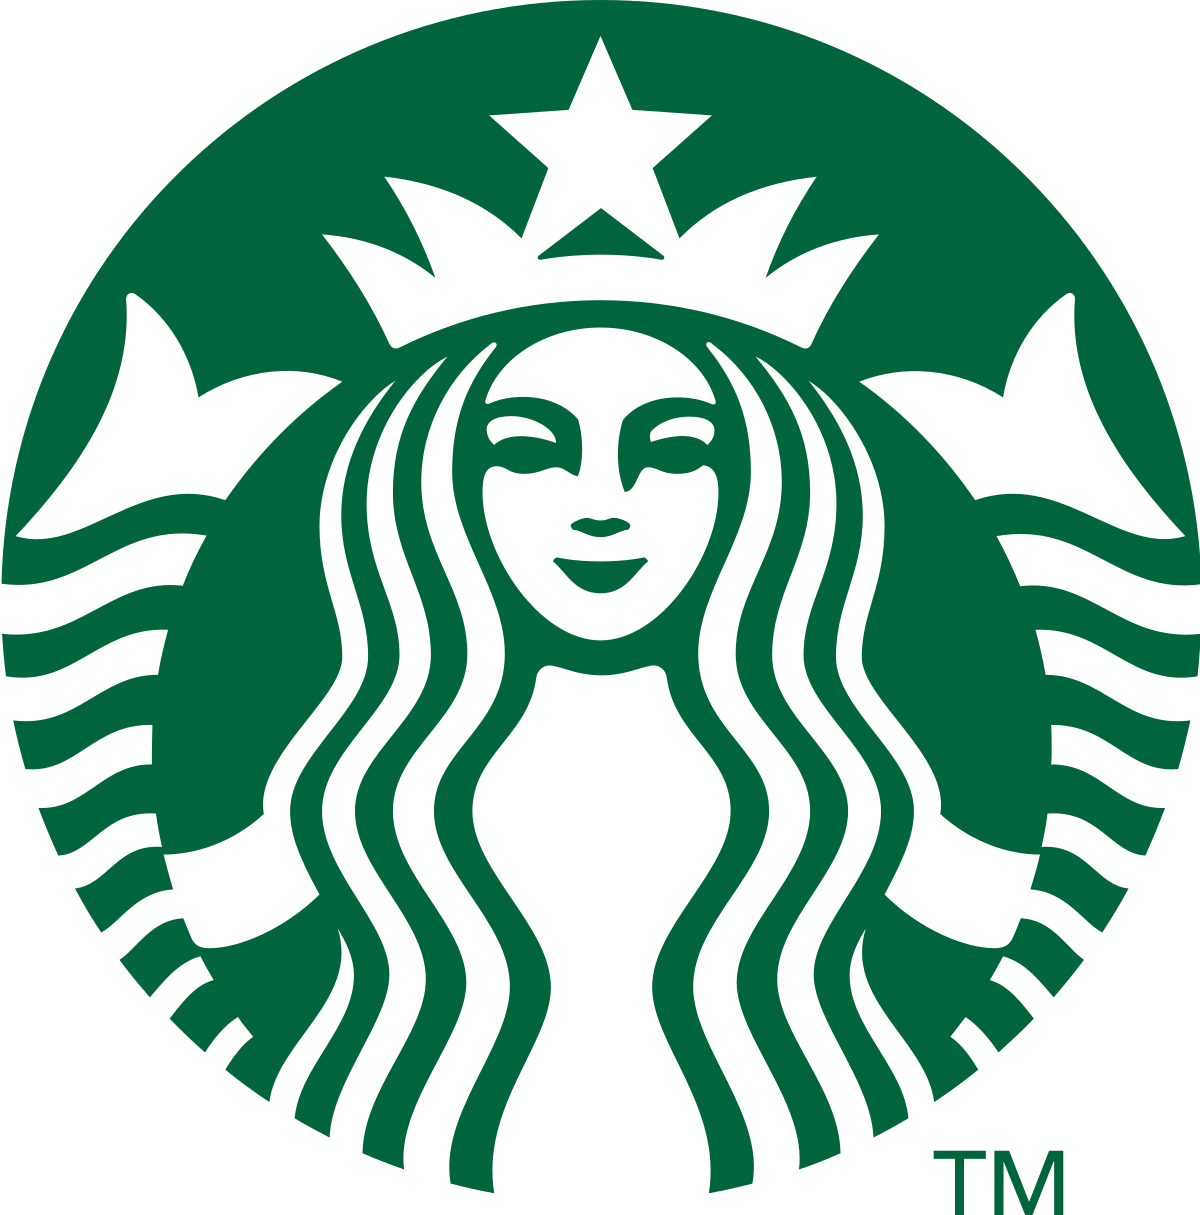 starbucks is a great example a brand with a high equity